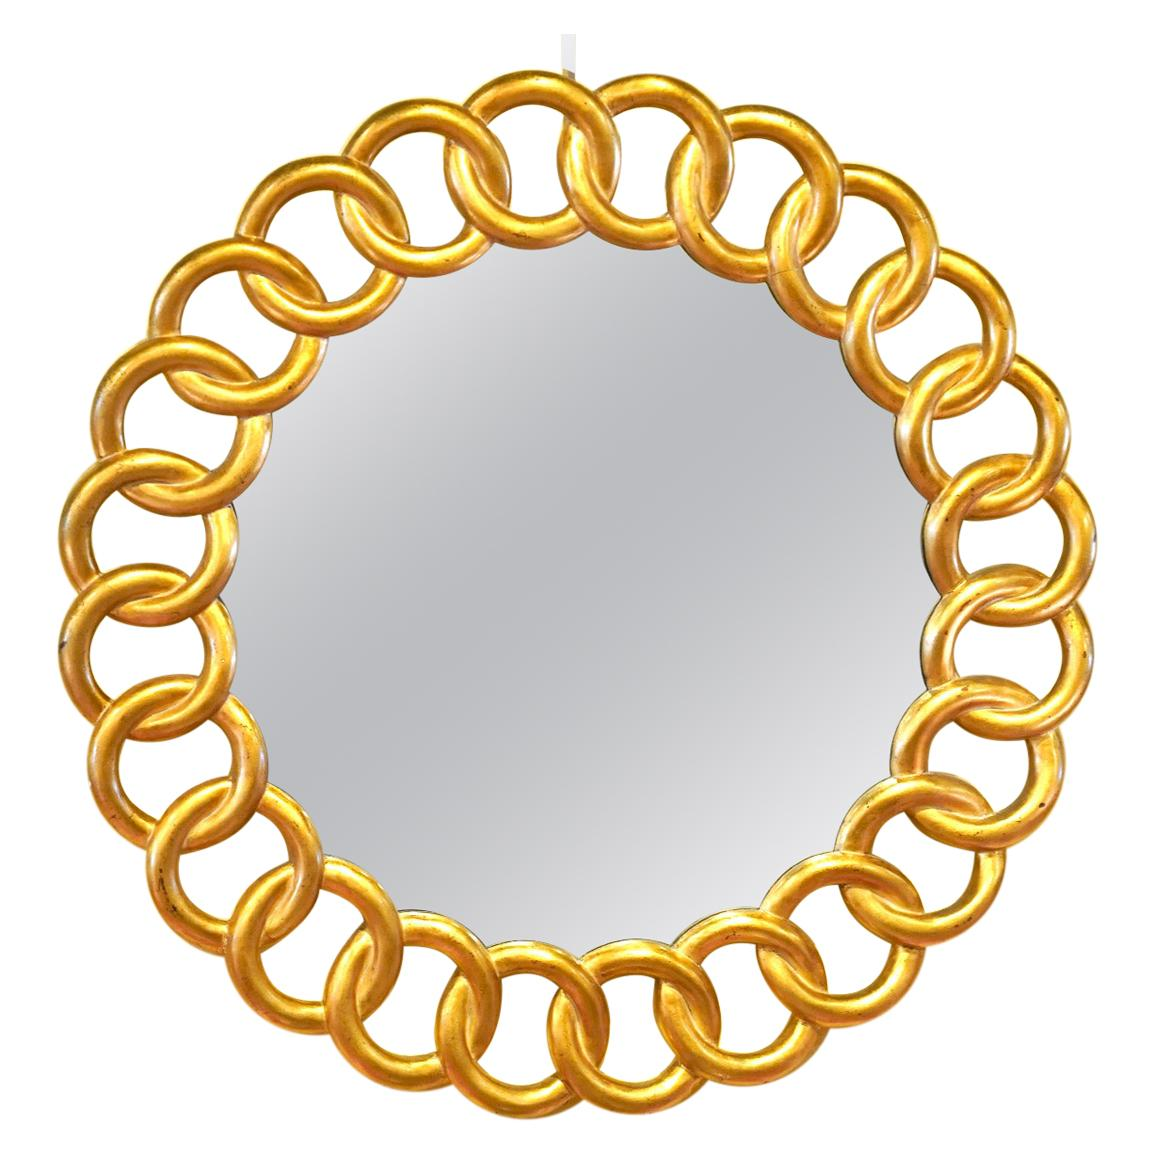 Round Linked Giltwood Rings Wall Mirror by Harrison & Gil for Dauphine Mirror Co